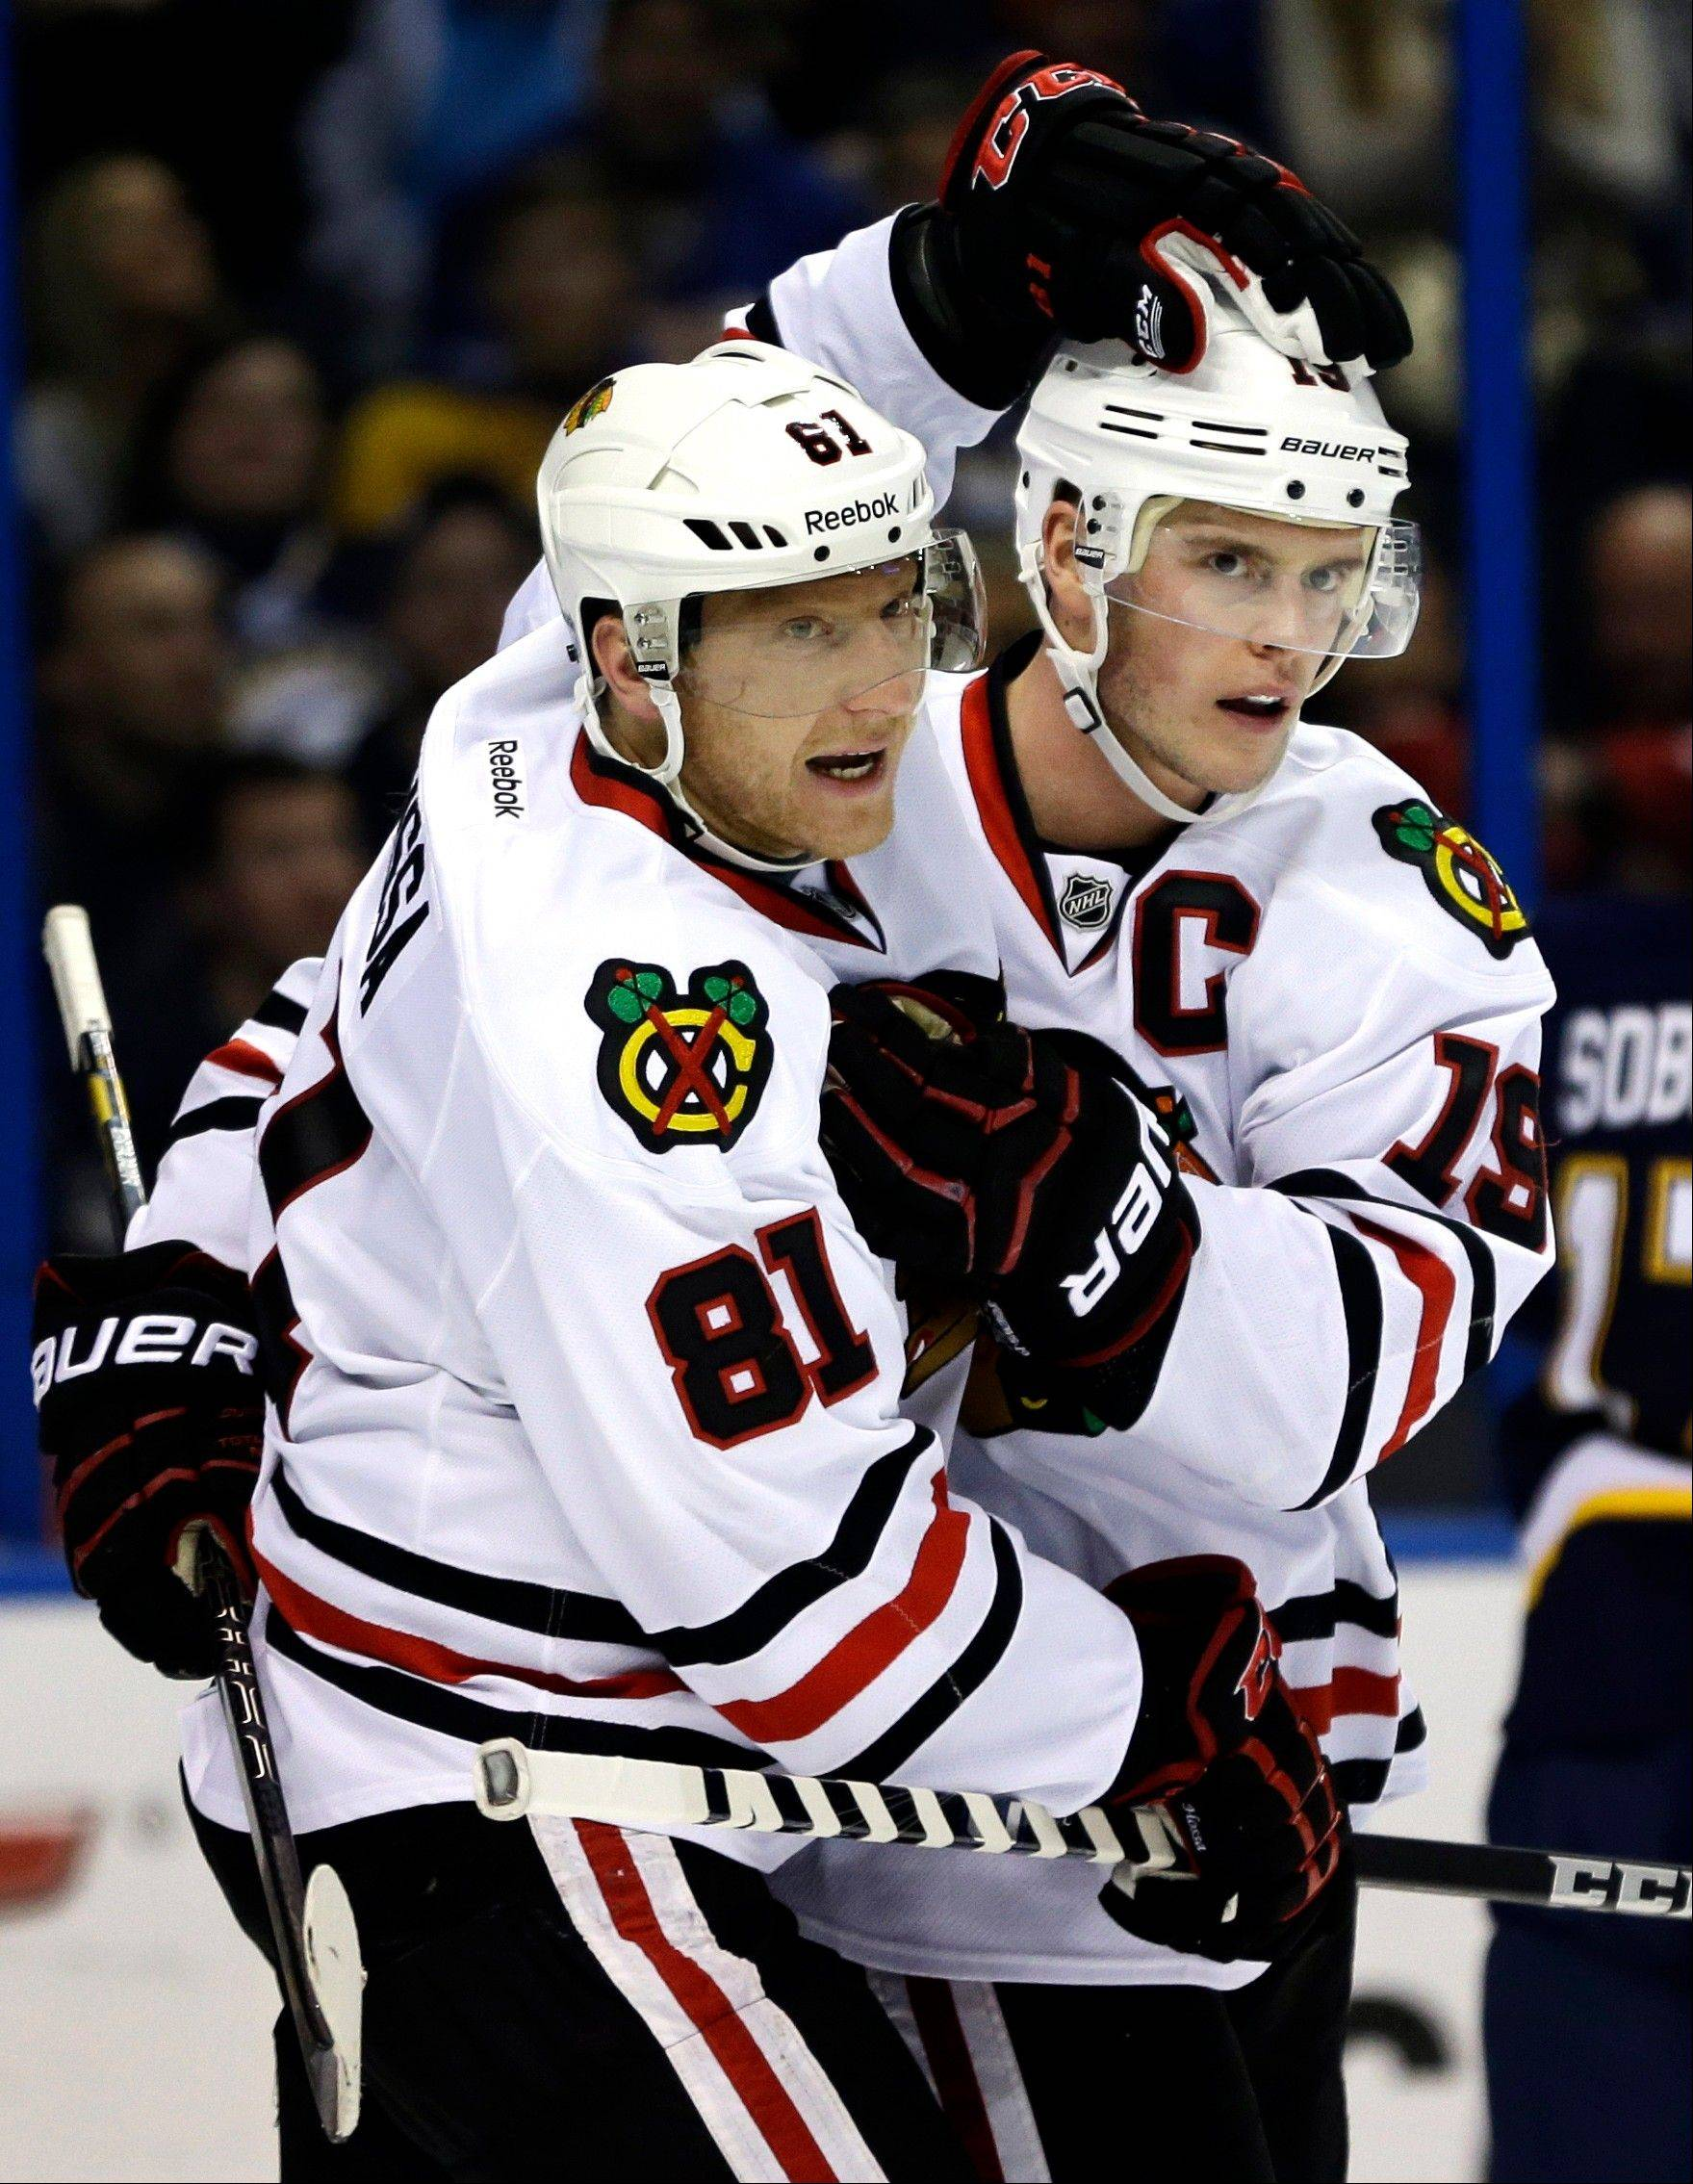 Chicago Blackhawks' Jonathan Toews, right, is congratulated by Marian Hossa, of Slovakia, after Toews scored his second goal of an NHL hockey game during the third period against the St. Louis Blues, Thursday, Feb. 28, 2013, in St. Louis. The Blackhawks won 3-0.